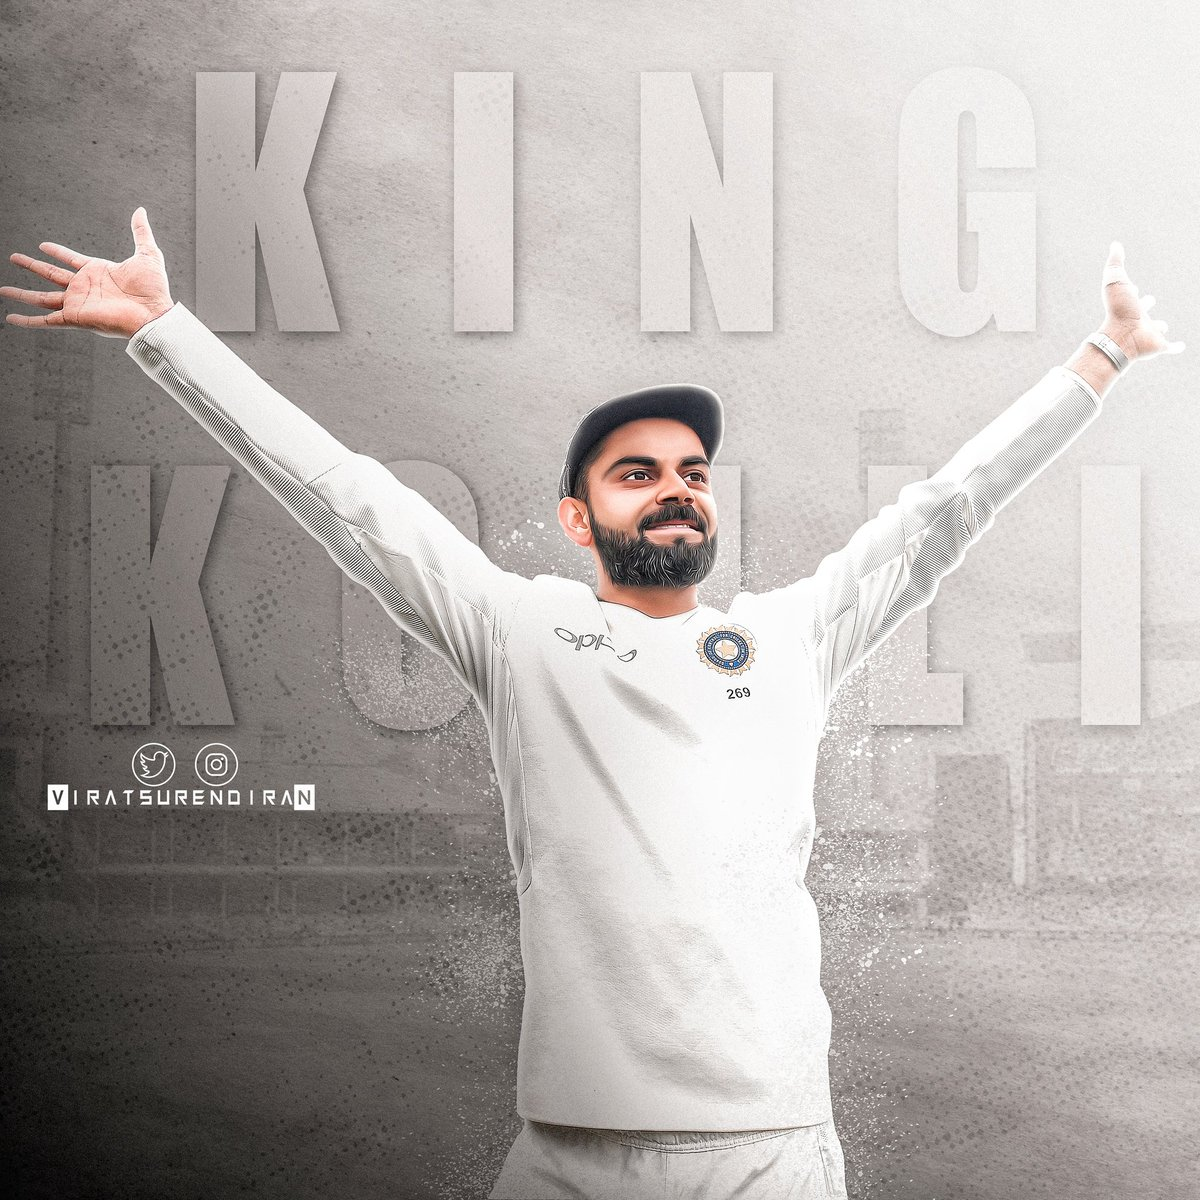 Good evening everyone...   I have spend time to make our #KingKohli picture as super heroes character... That picture should be releasing on coming Saturday at 7:00 PM... Stay tuned....   Without ur support am nothing   #ViratKohli   HD :  https:// drive.google.com/file/d/1Z6HXDa QzjviUIgOvw9To0BRzeH8iKNHS/view?usp=drivesdk   … <br>http://pic.twitter.com/Sb0cyob8ft